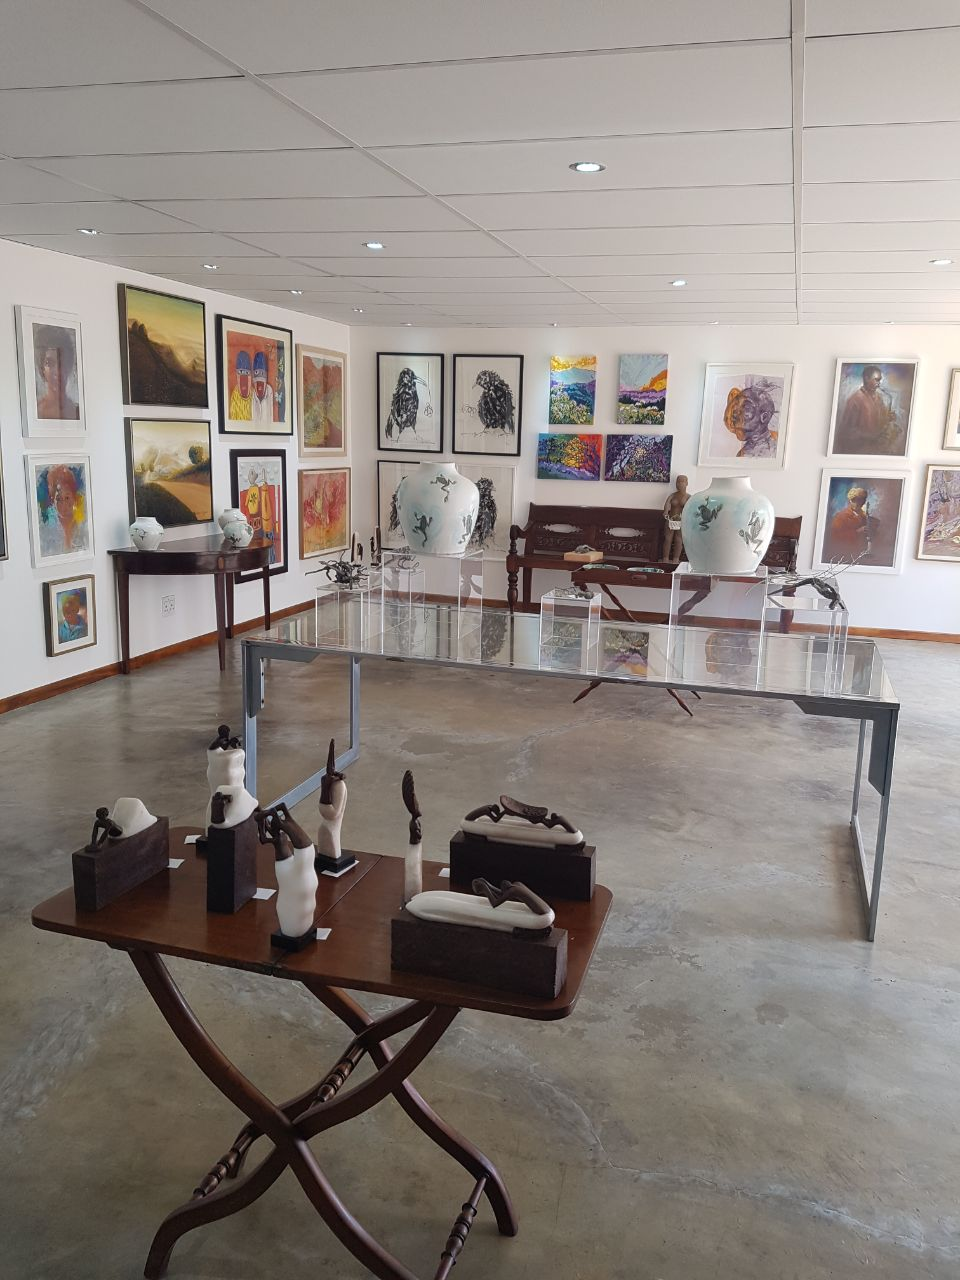 2017 - Group exhibition in Johannesburg at Intethe Gallery.